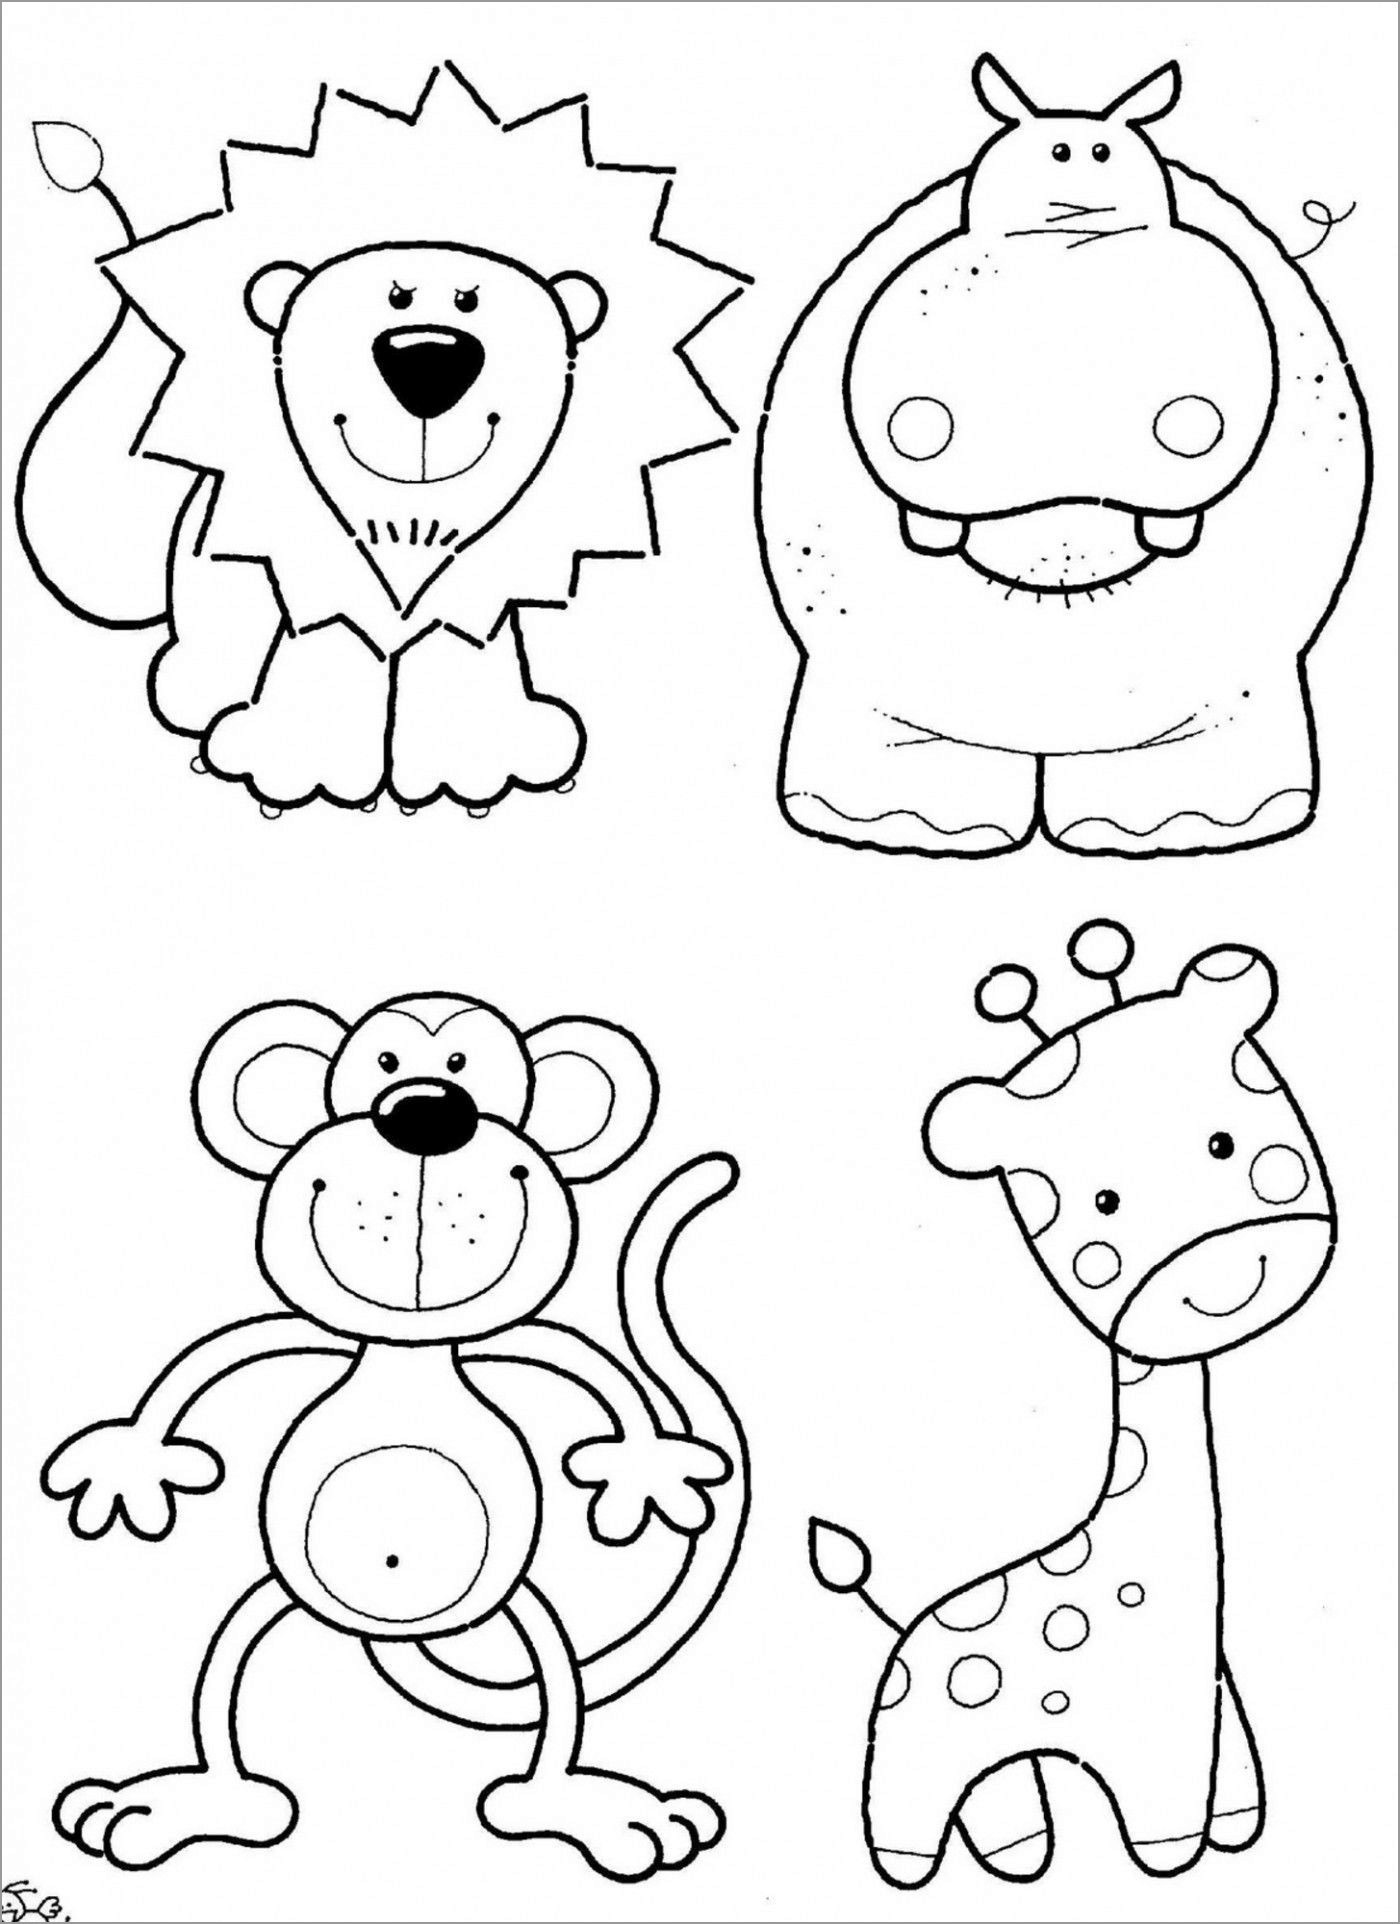 Cute Zoo Animal Coloring Page